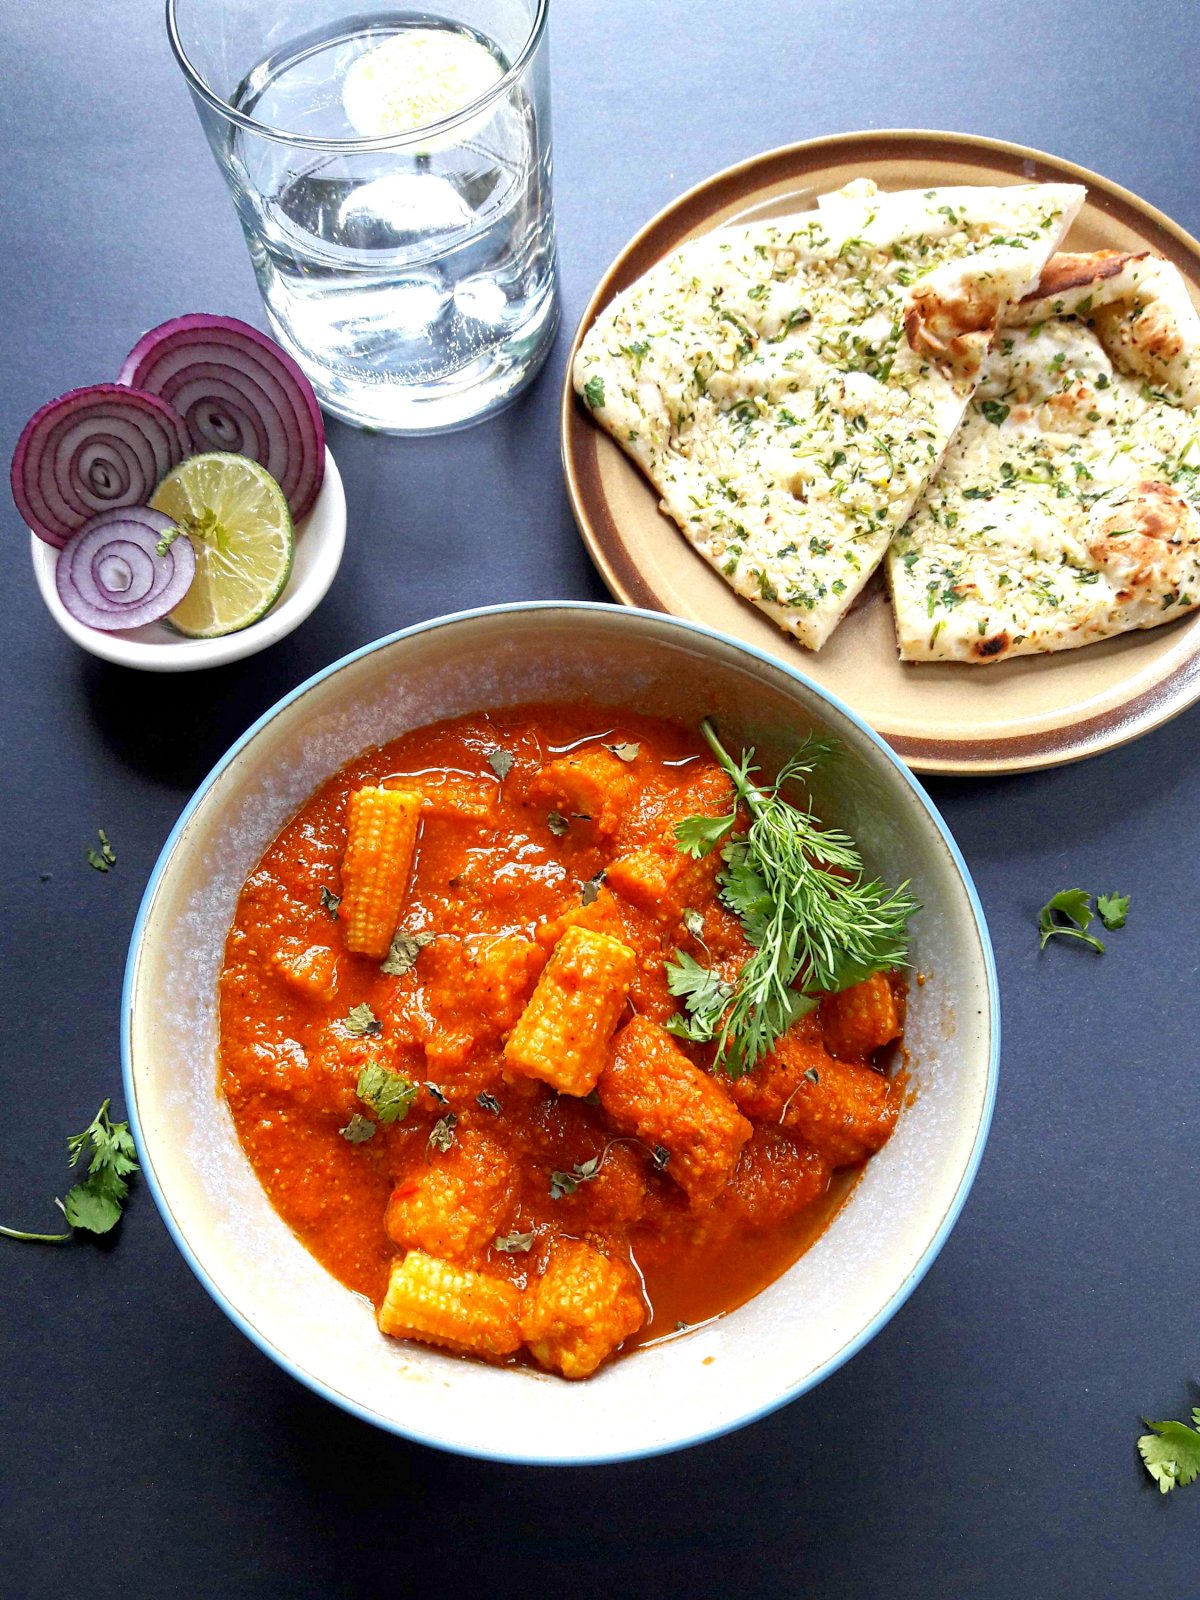 Dinner served with bowl of baby corn curry, naan and side of red onions and lemon salad along with glass of water on the side.